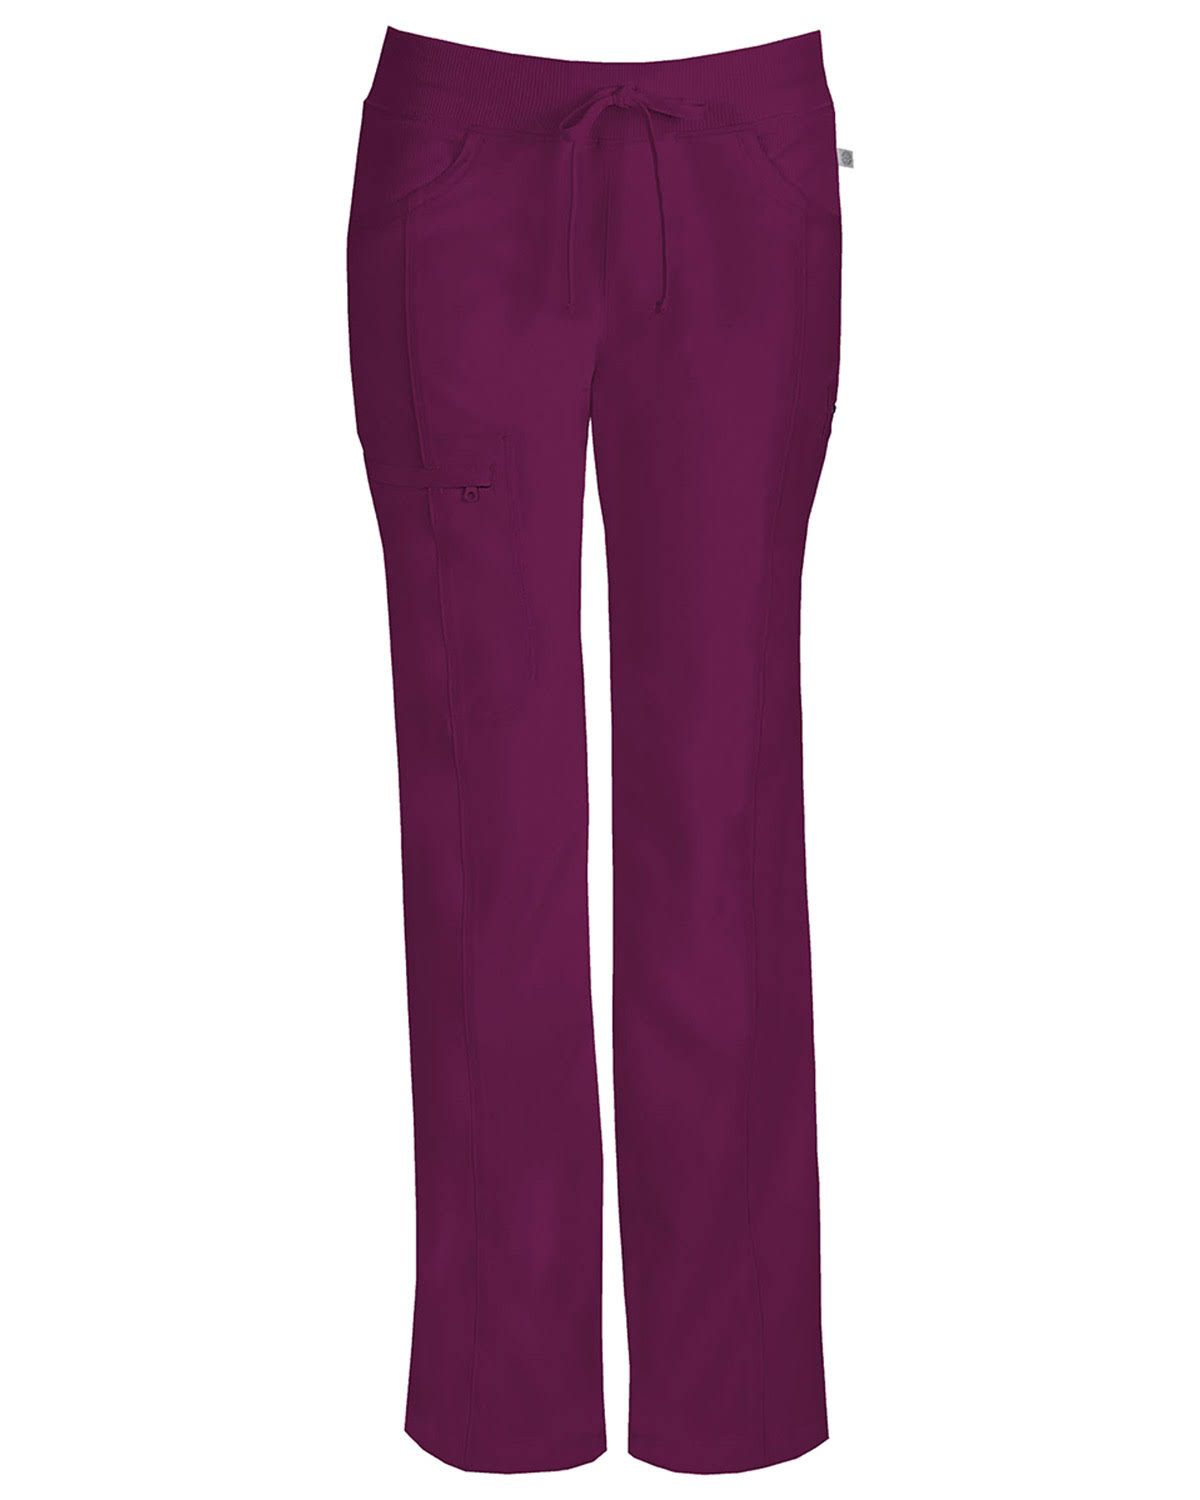 Cherokee Infinity Low Rise Straight Leg Drawstring Pant - Wine, XX-Large